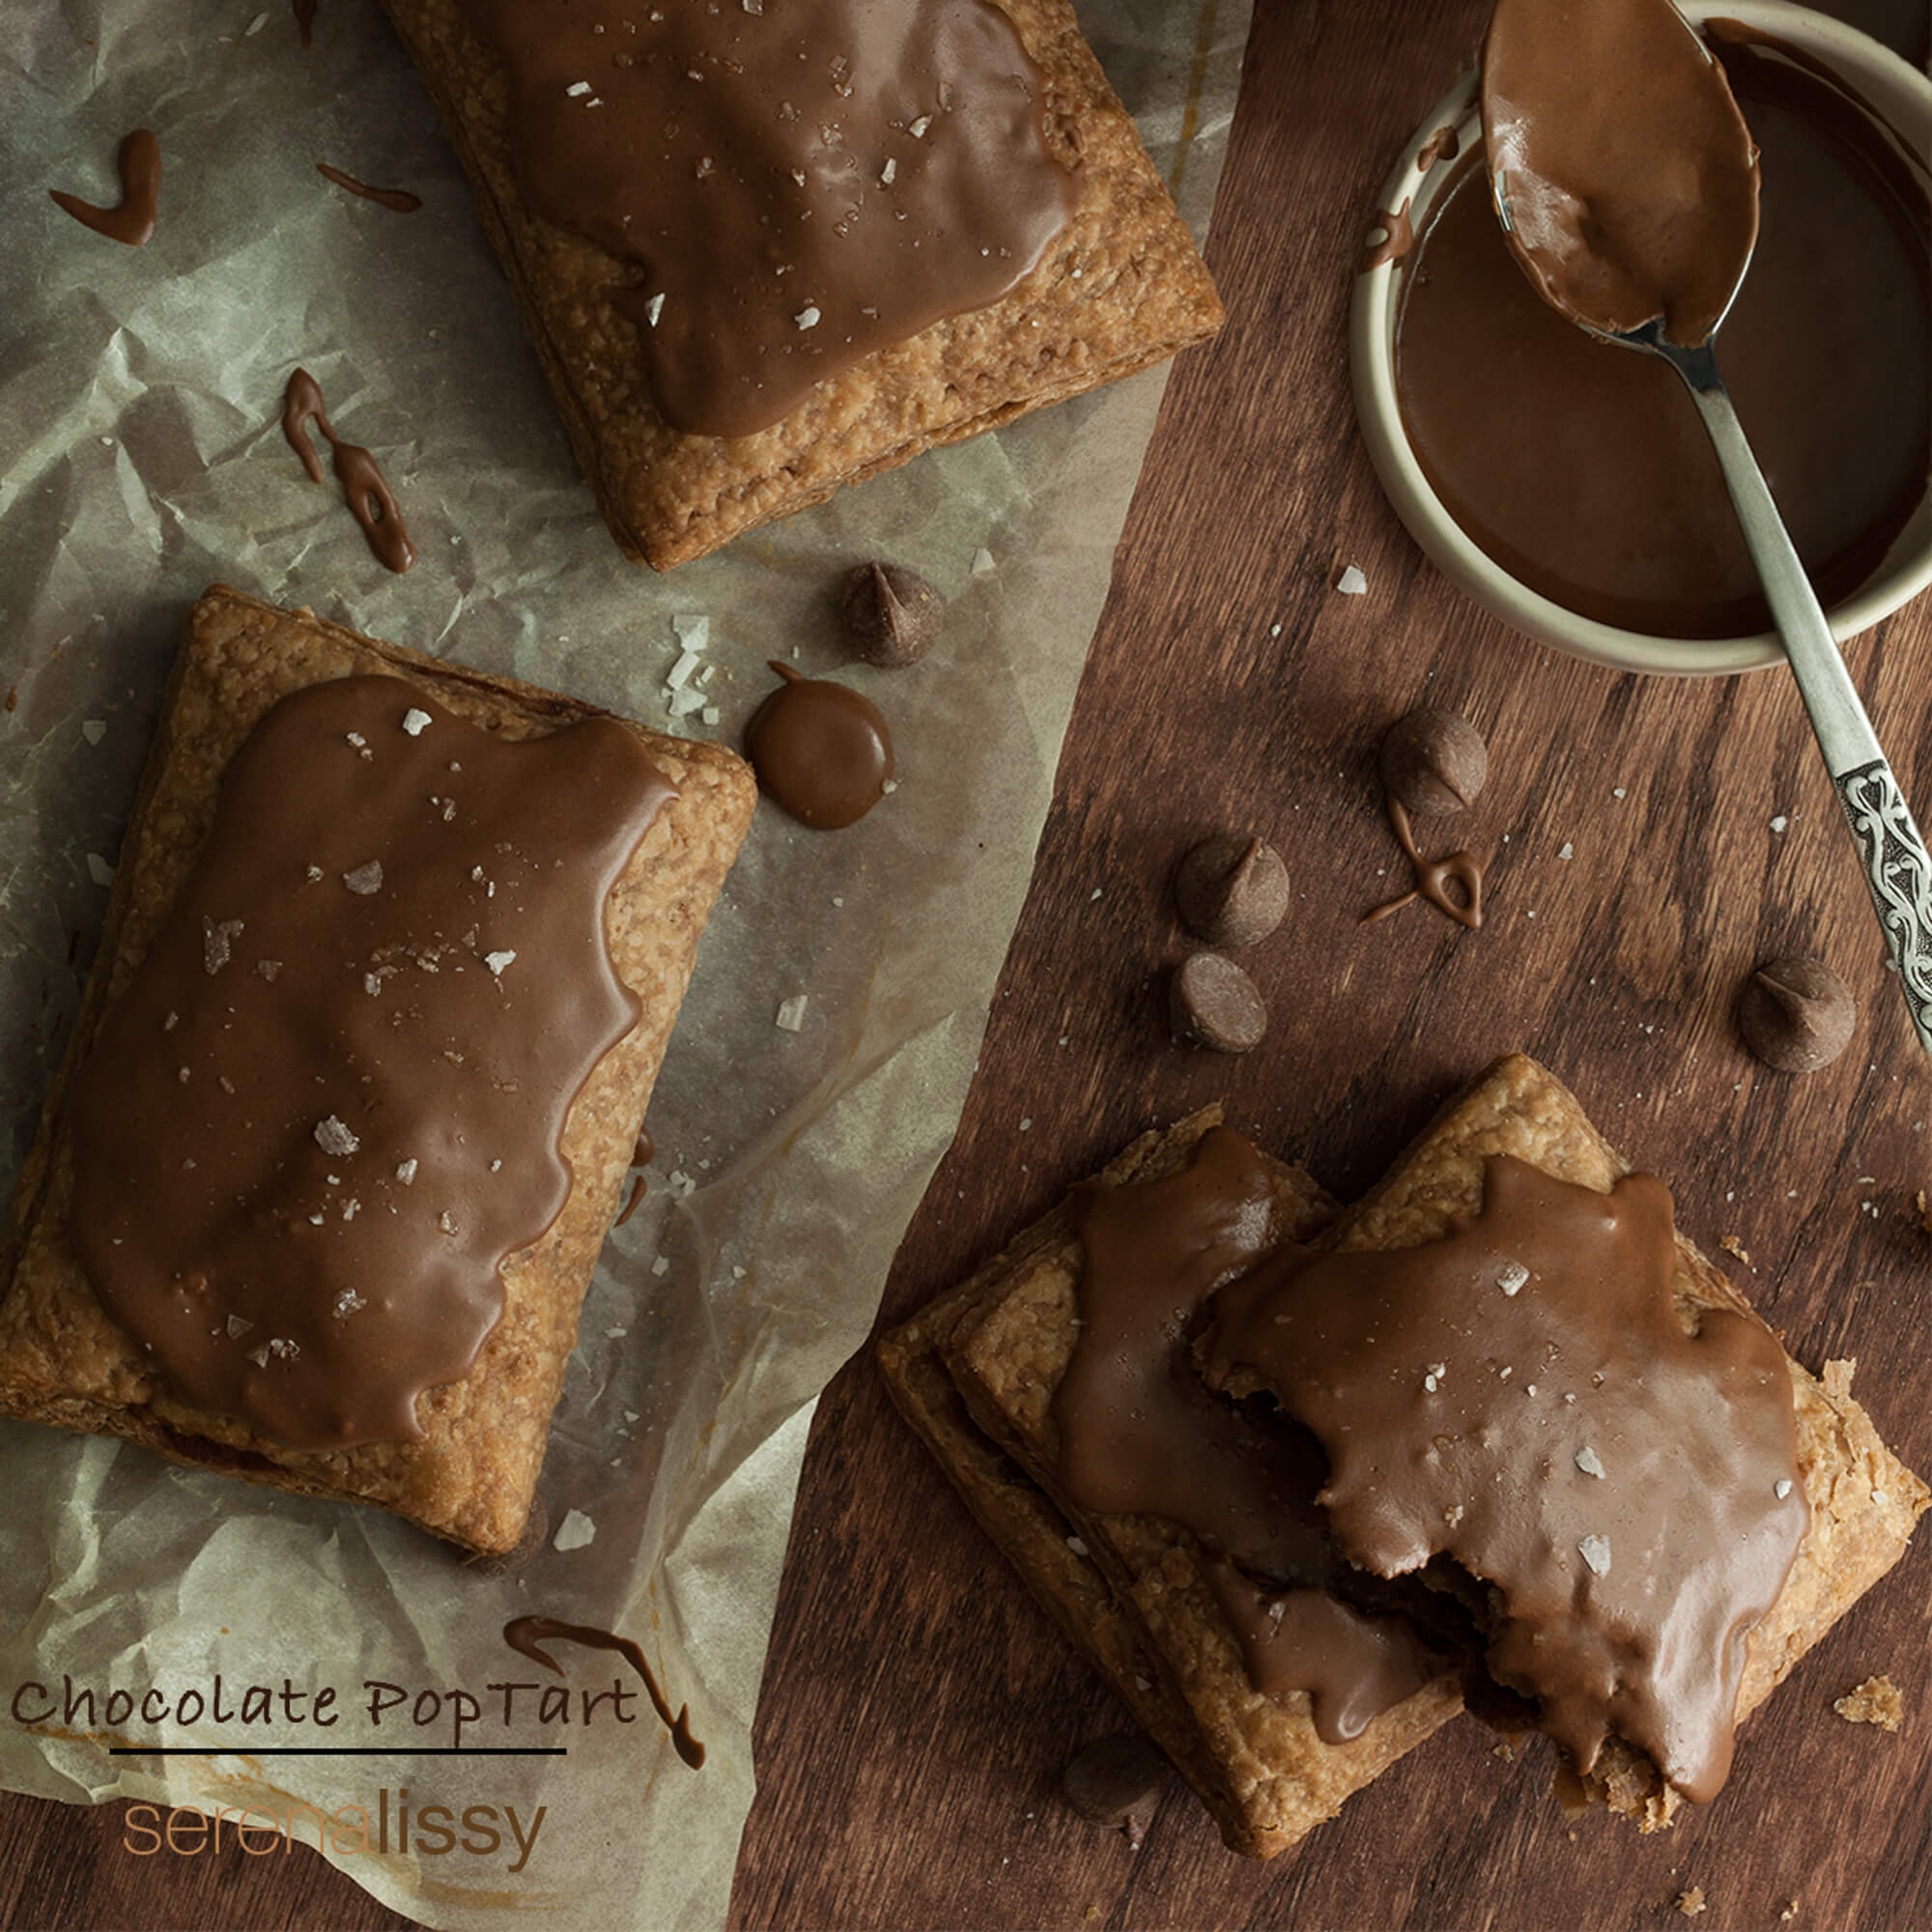 Chocolate Pop Tarts